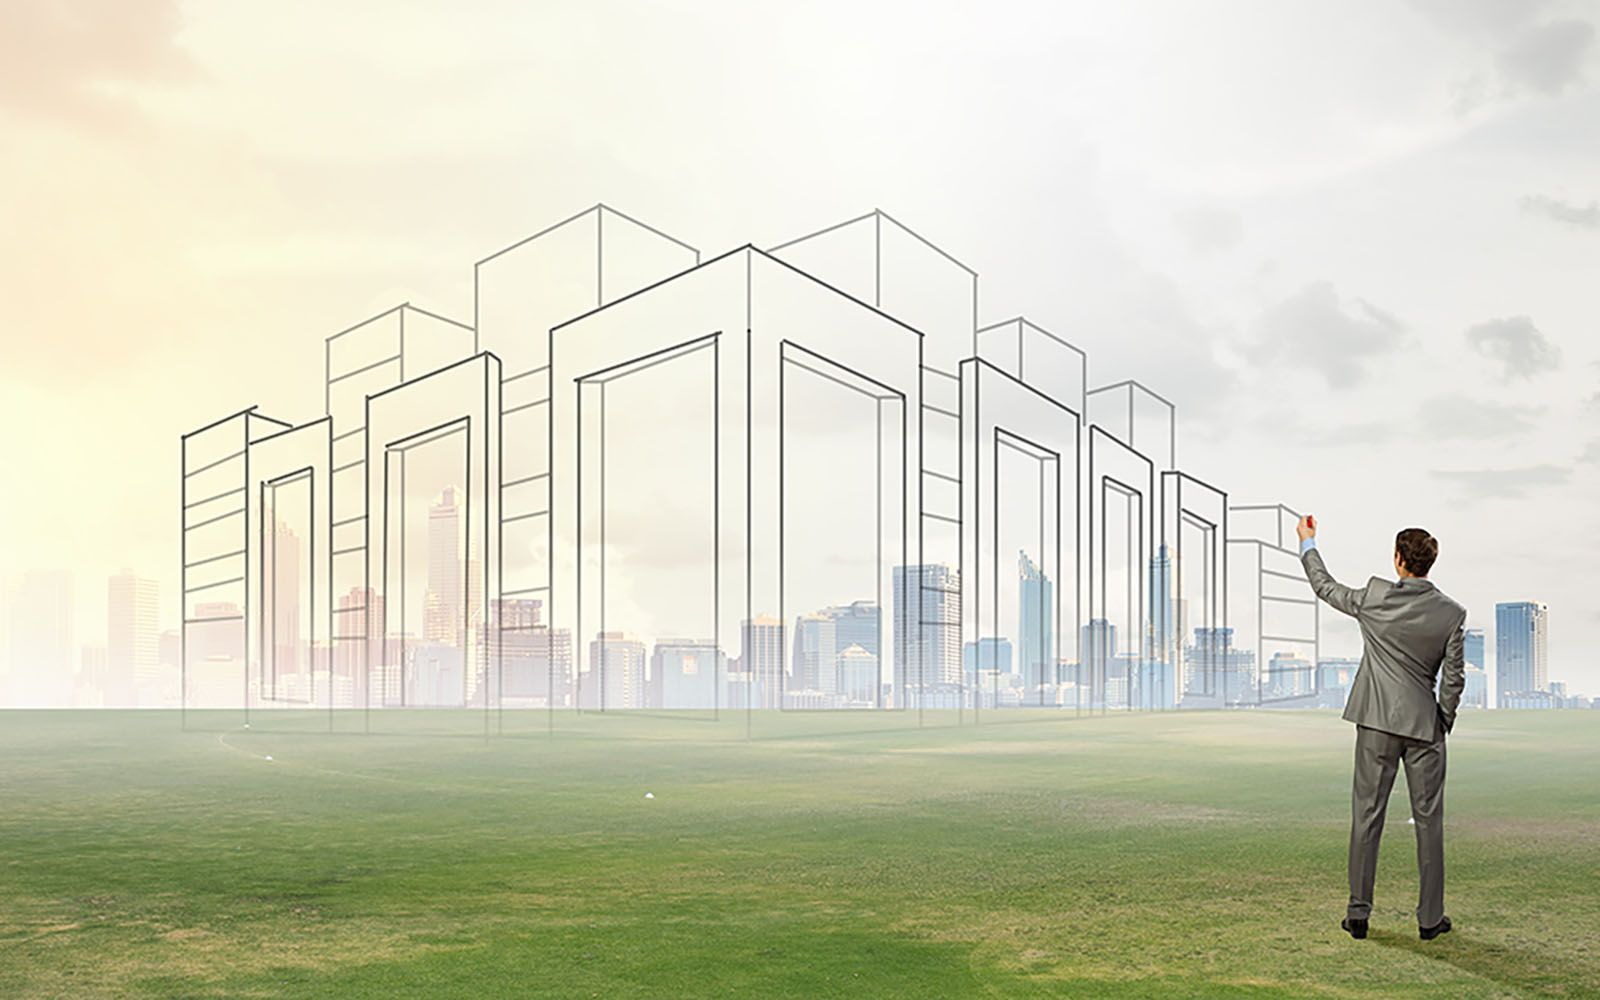 Fits And Starts: Housing Business Leaders' Biggest Risk